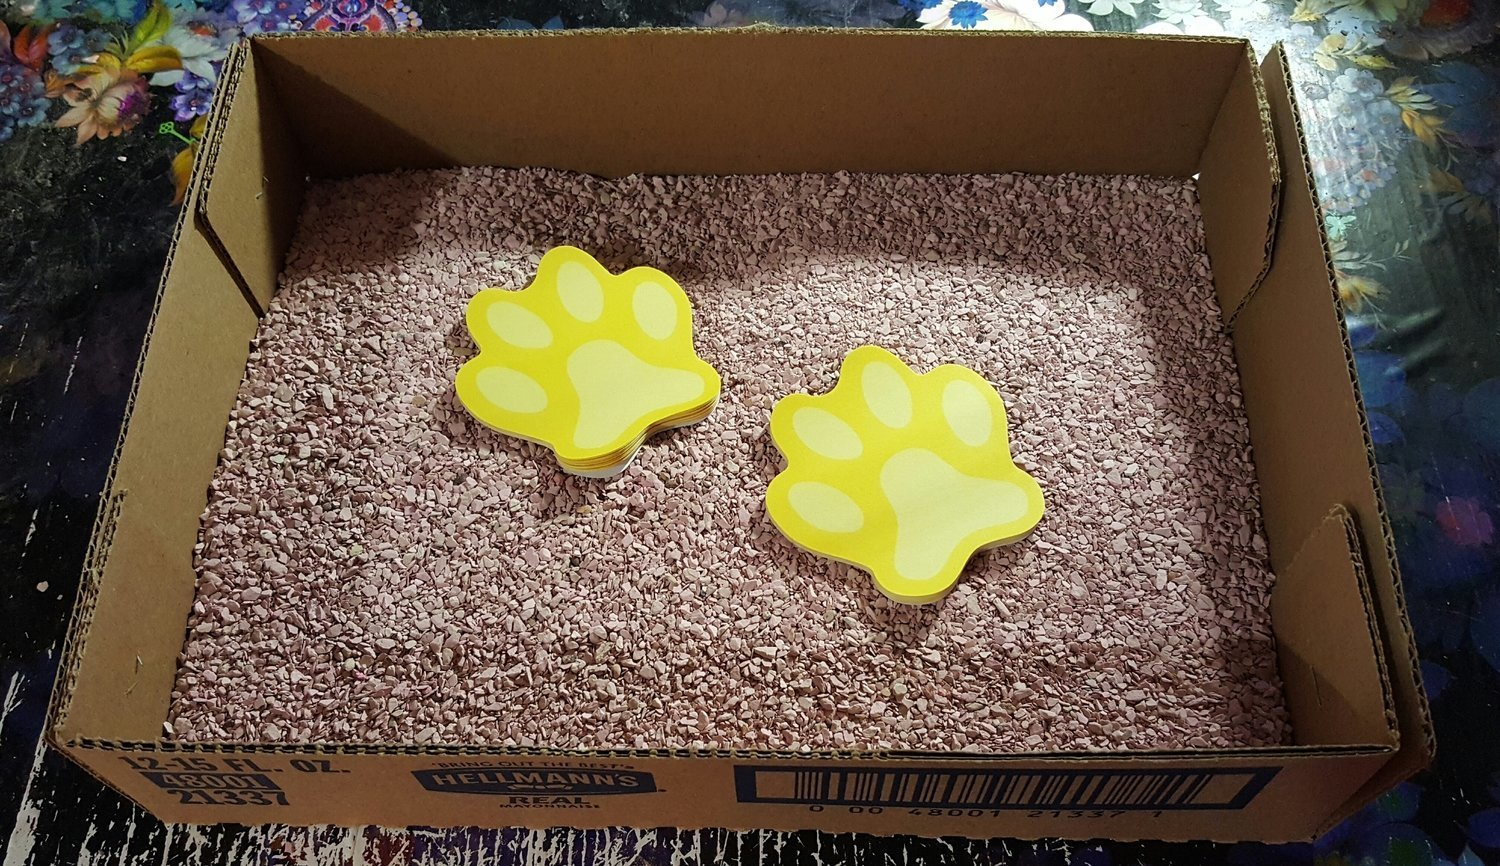 10 FUR $1.00 Disposable Cardboard Litter Boxes **Shipped flat and corners will need to be glued or stapled** (B)